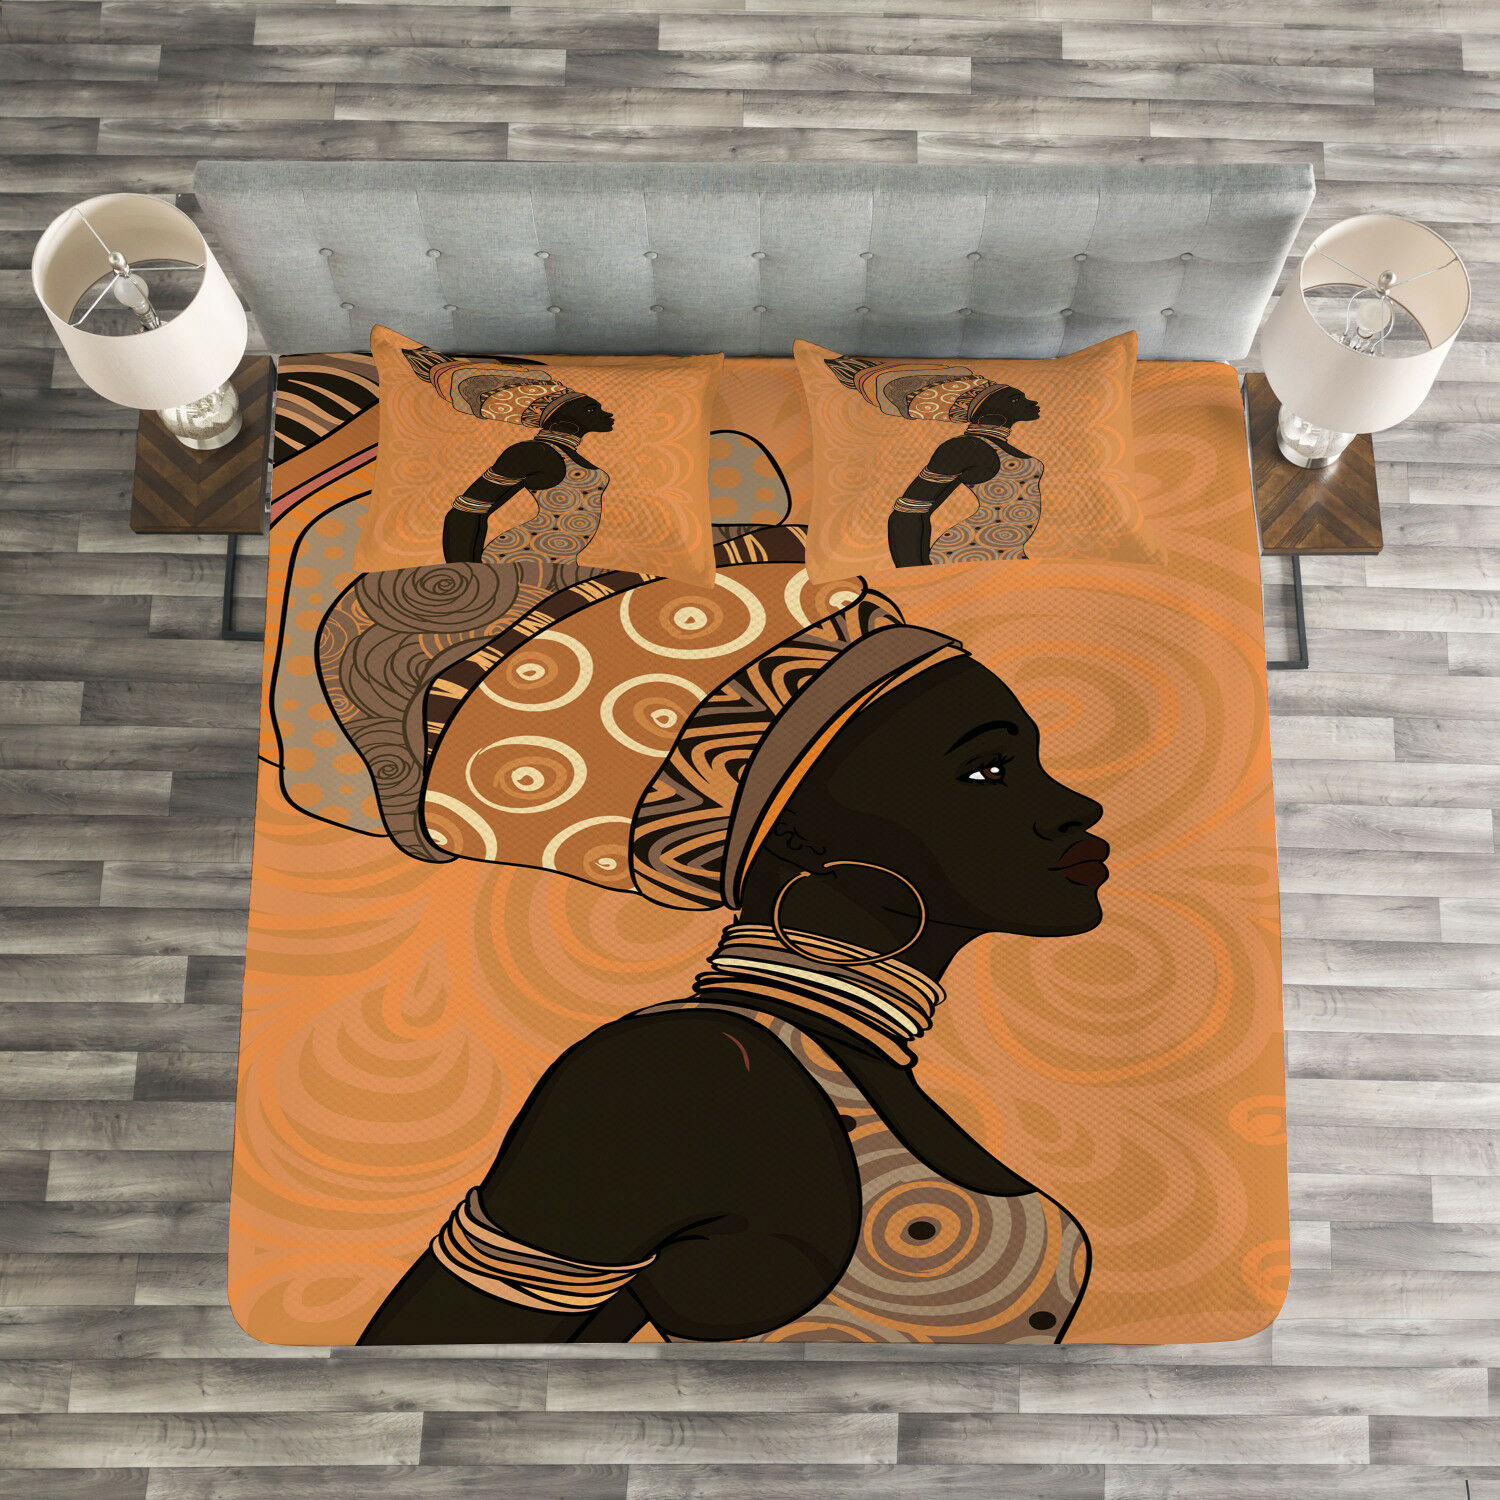 African femme courtepointeed litspread & PilFaible Shams Set, Africa Local femme impression